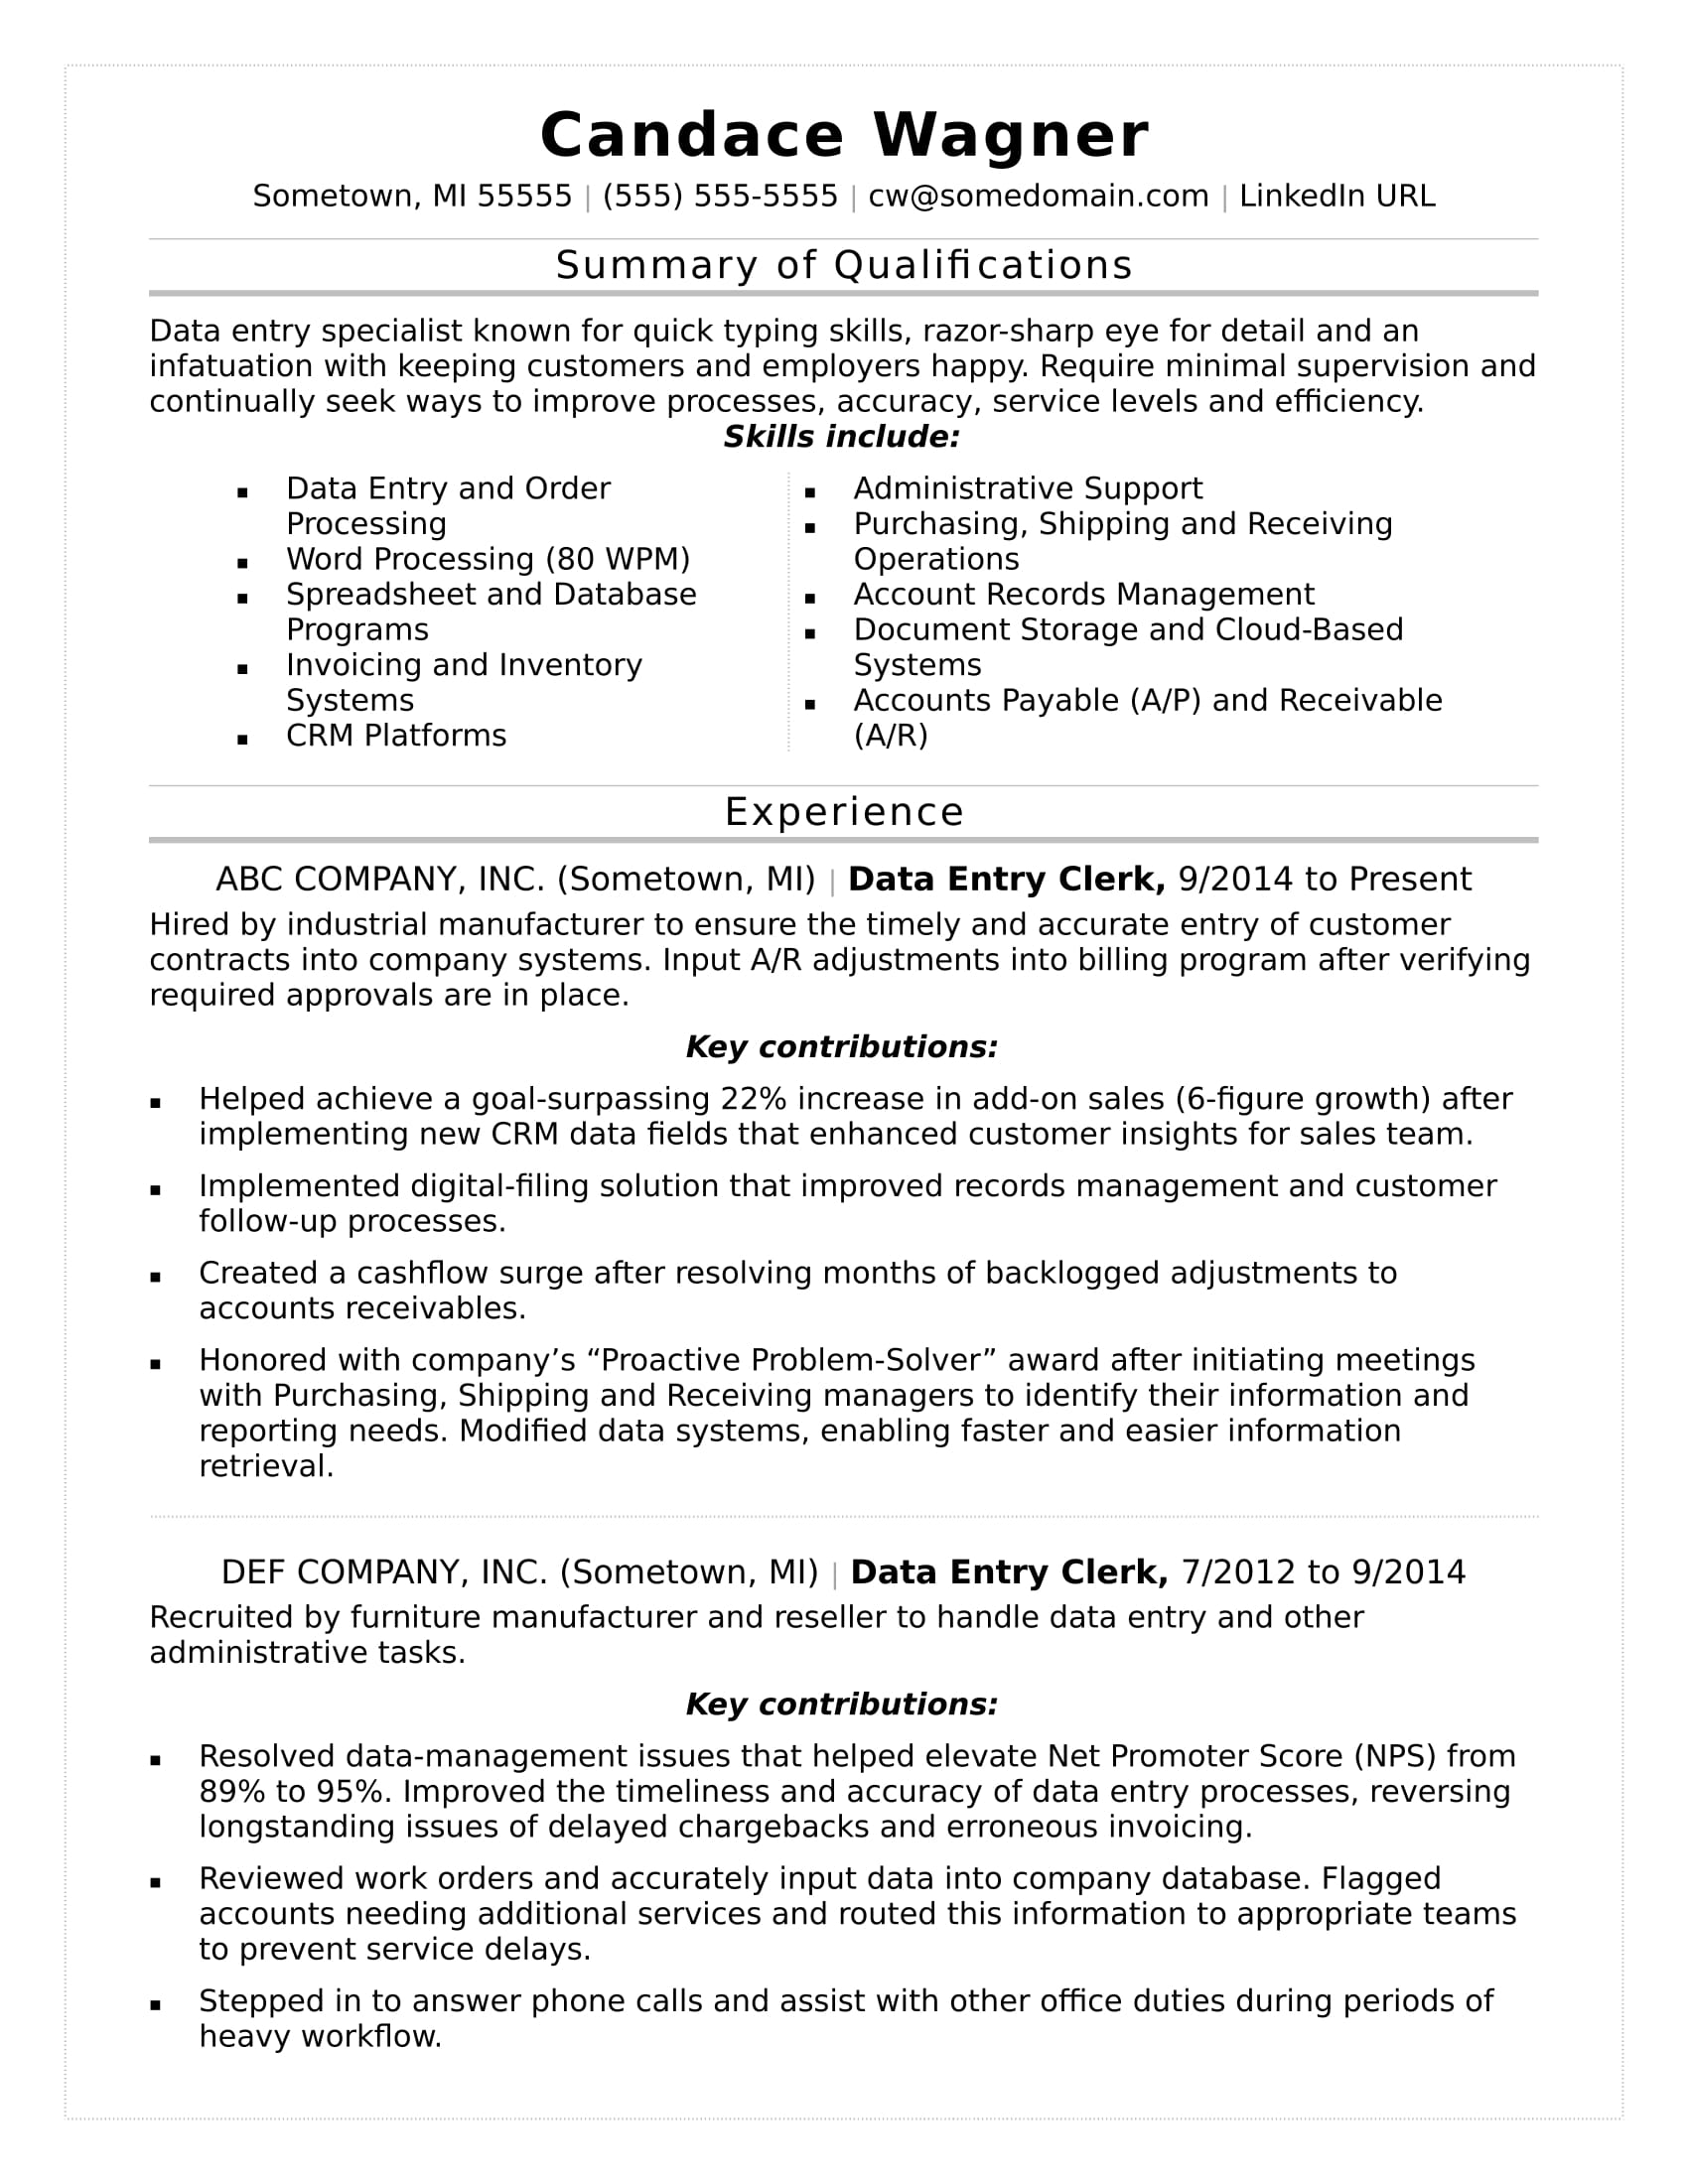 Data Entry Resume Sample | Monster com